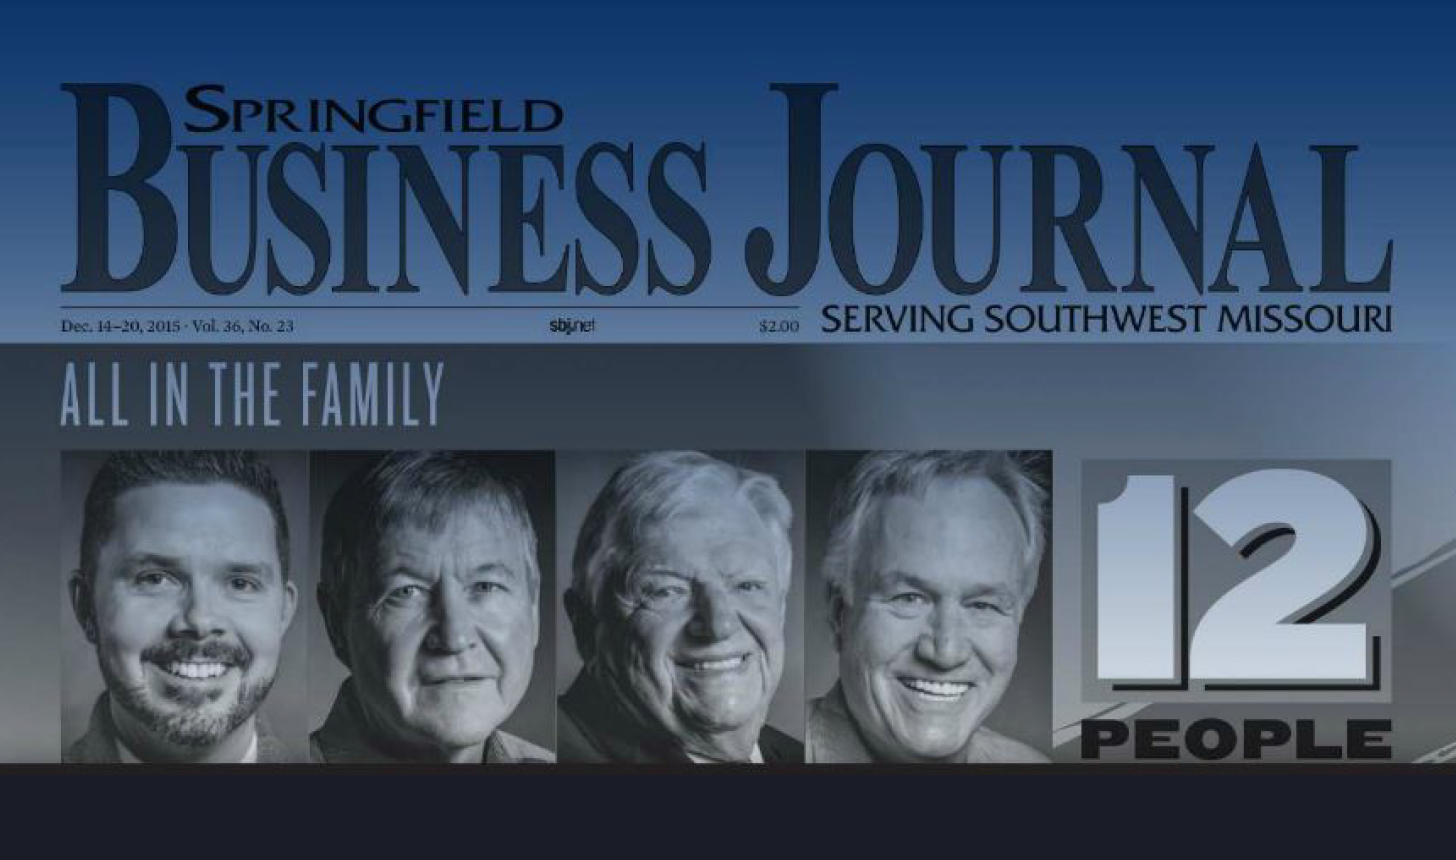 Business Journal cover